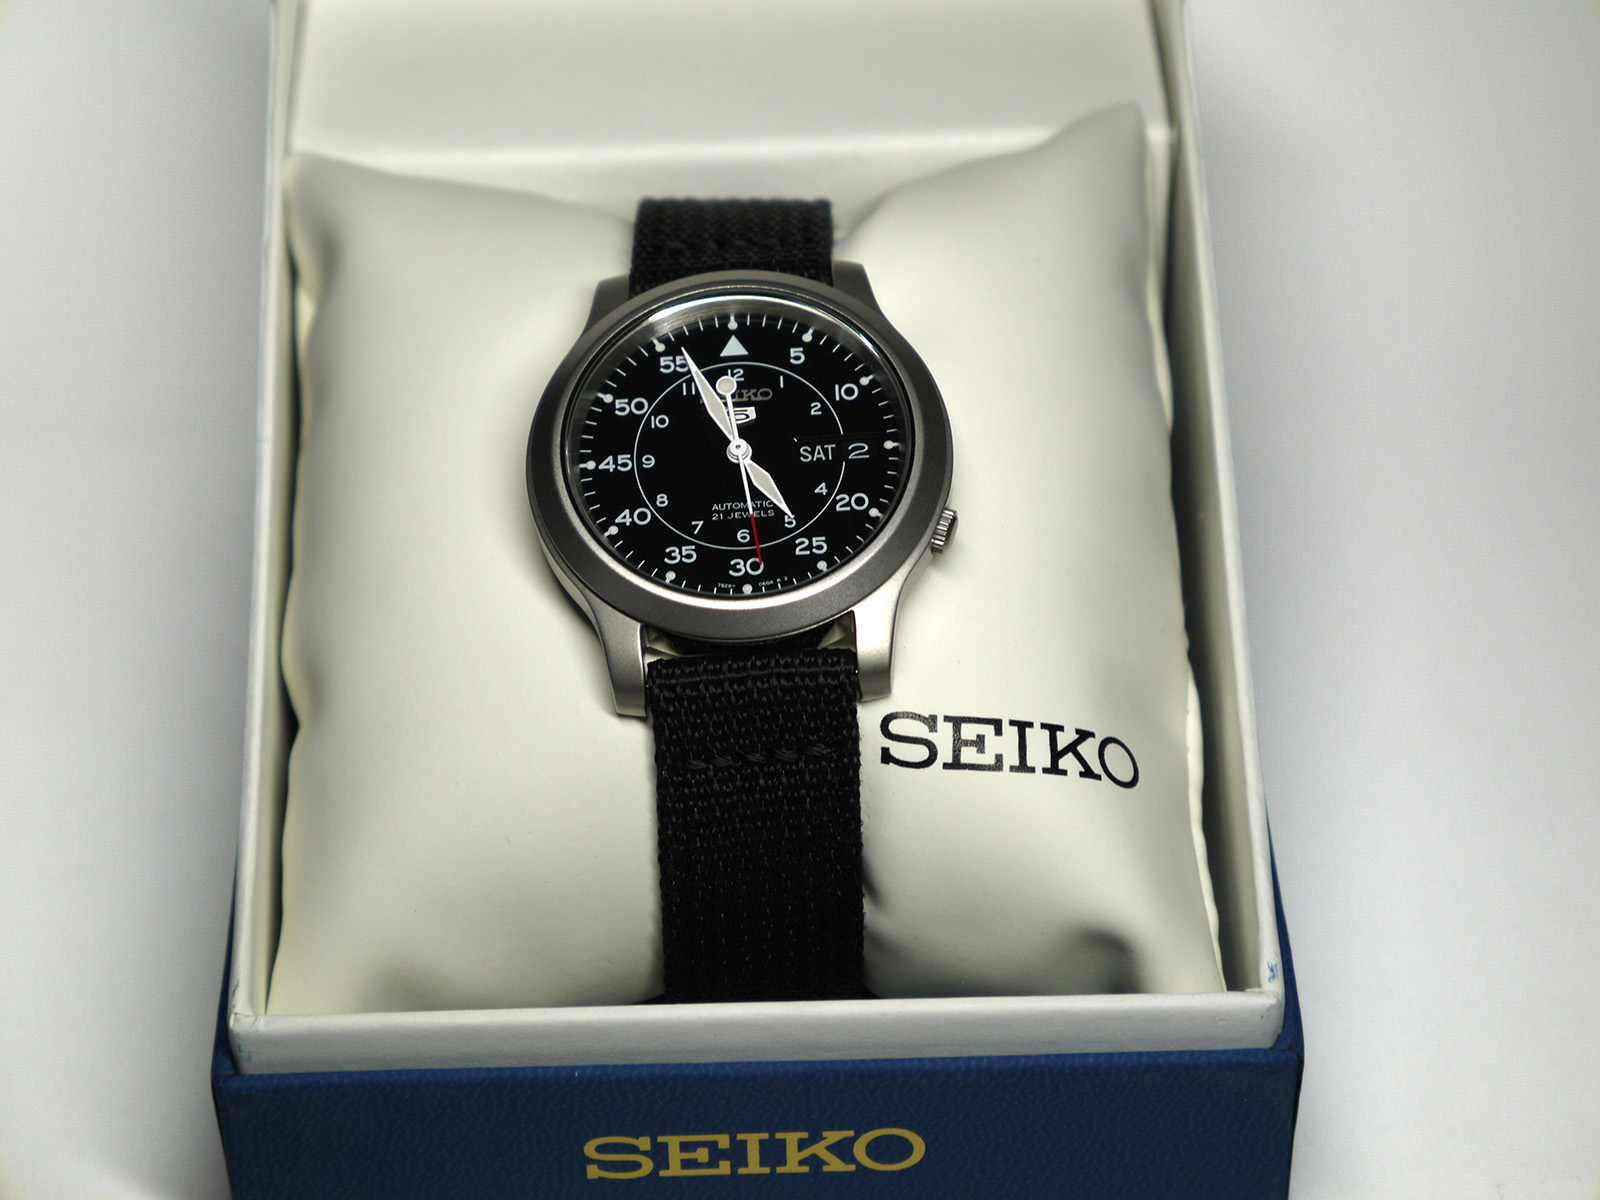 Seiko 5 SNK809 Automatic Stainless Steel Watch with Black Canvas Strap